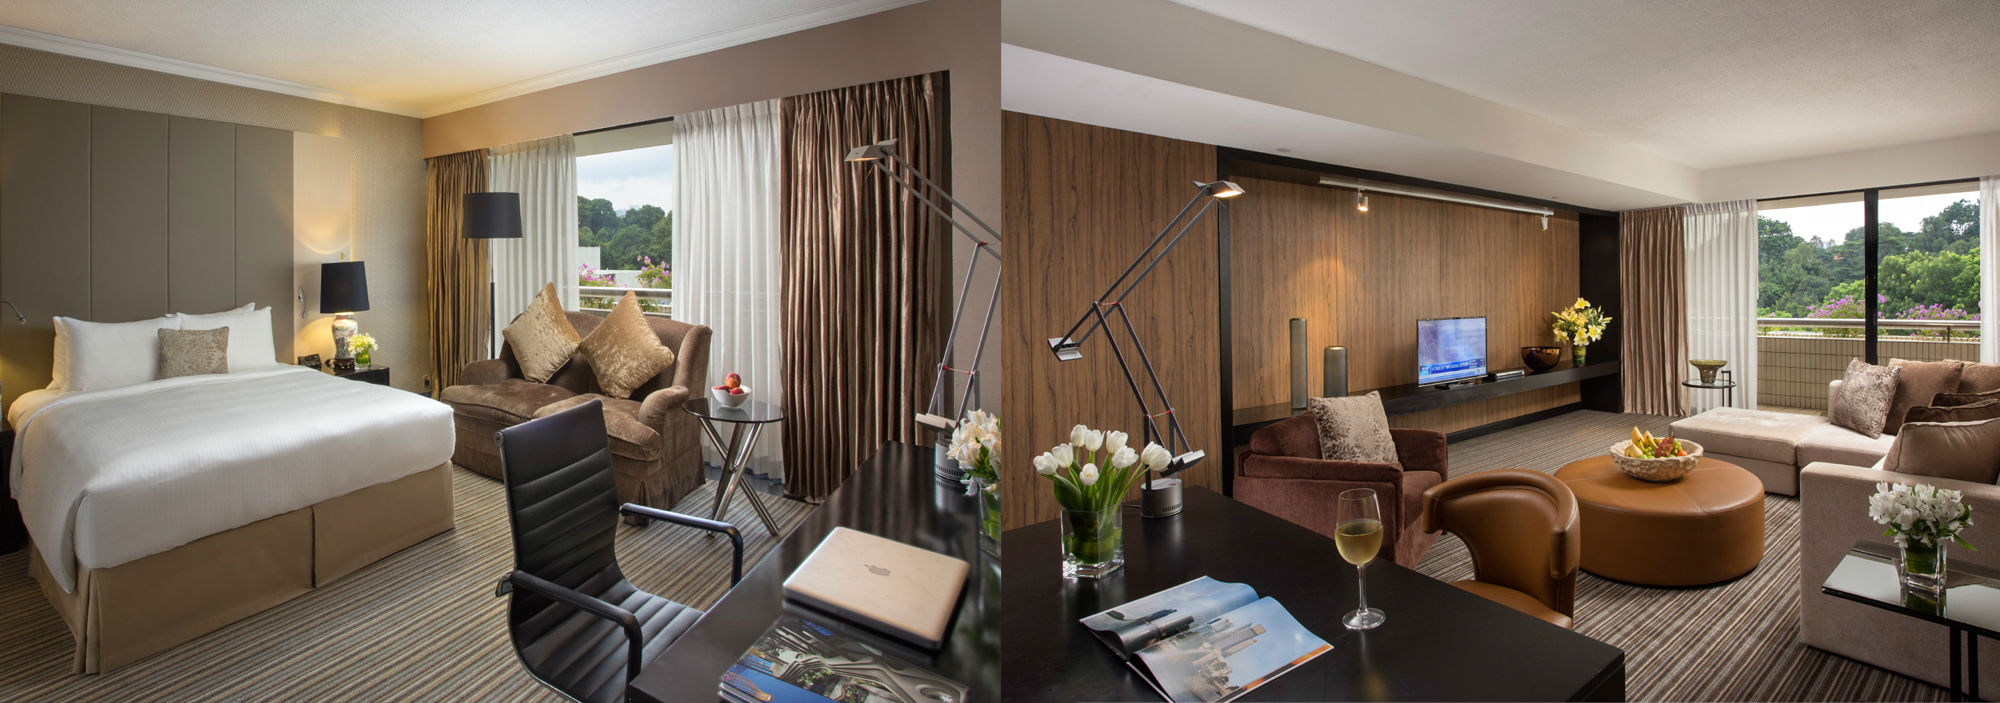 Presidential Suites Hotel Orchard Concorde Hotel Singapore